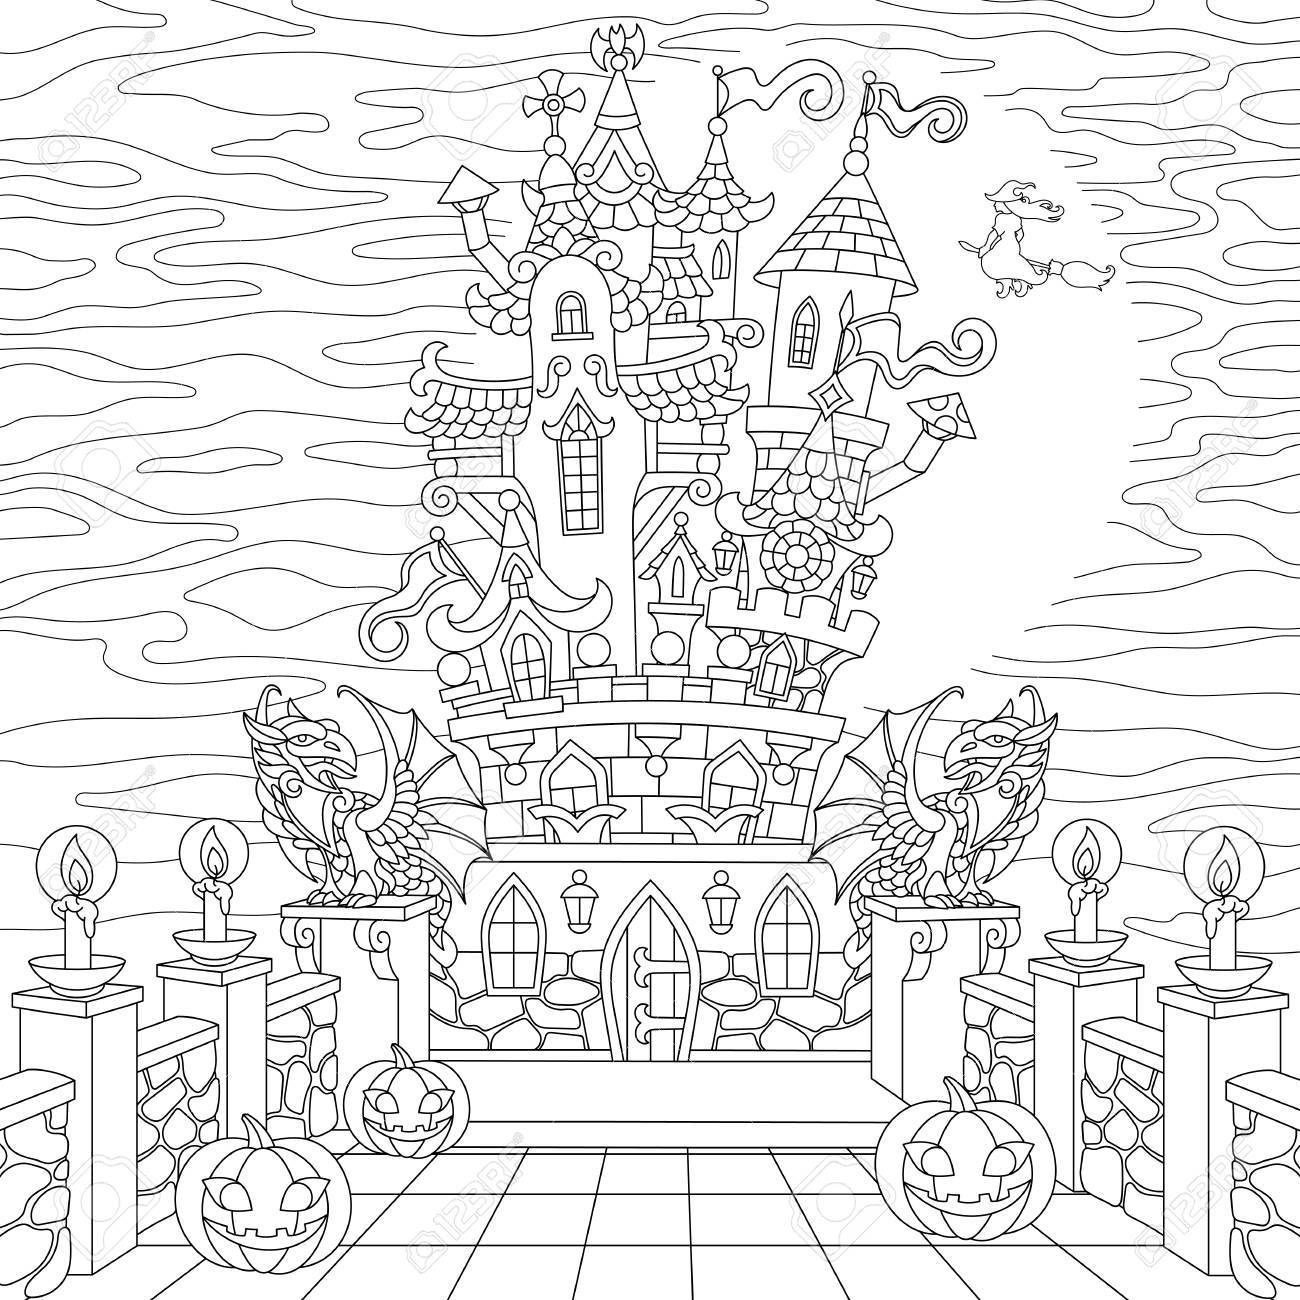 1300x1300 Halloween Coloring Page. Spooky Castle, Halloween Pumpkins, Witch